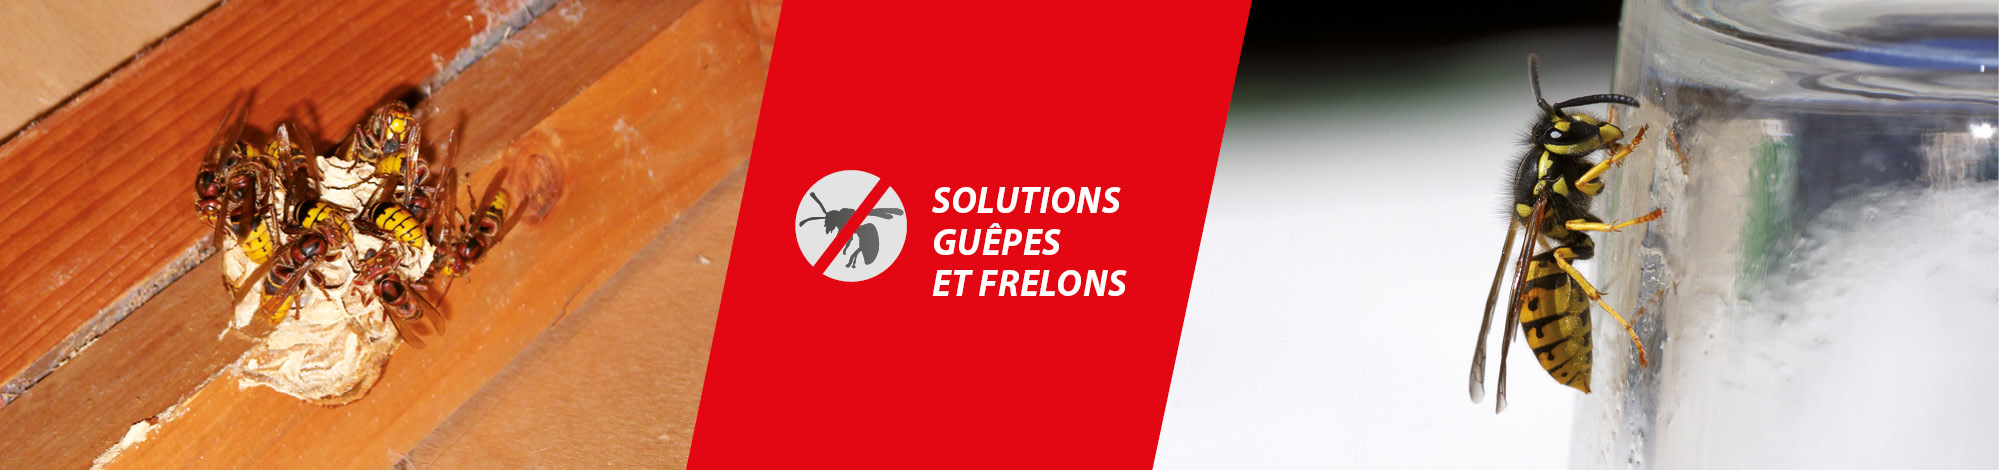 solutions frelons